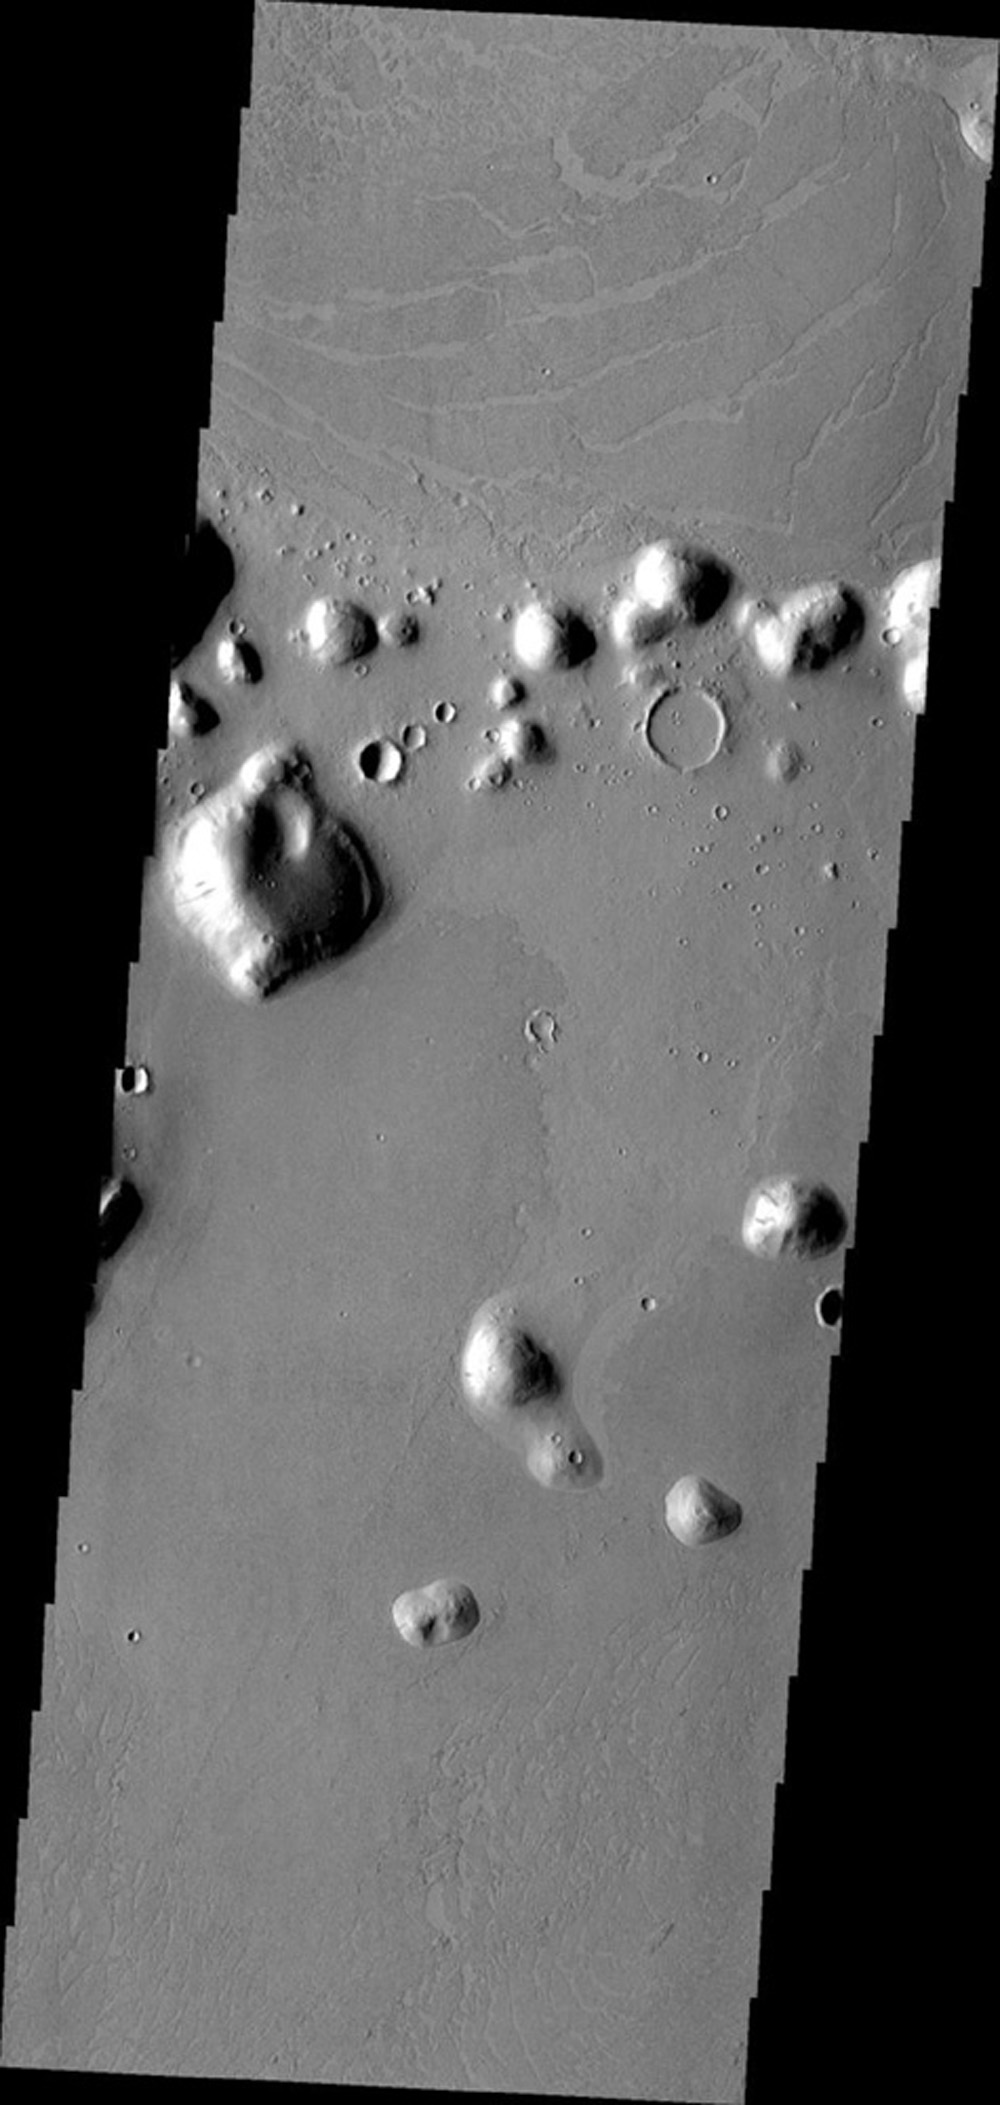 This image from NASA's Mars Odyssey shows Marte Vallis, a large volcanic complex on Mars. Platy flows, where the top crust has cooled and then cracked and moved due to molten lava below, are typical of this volcanic complex.